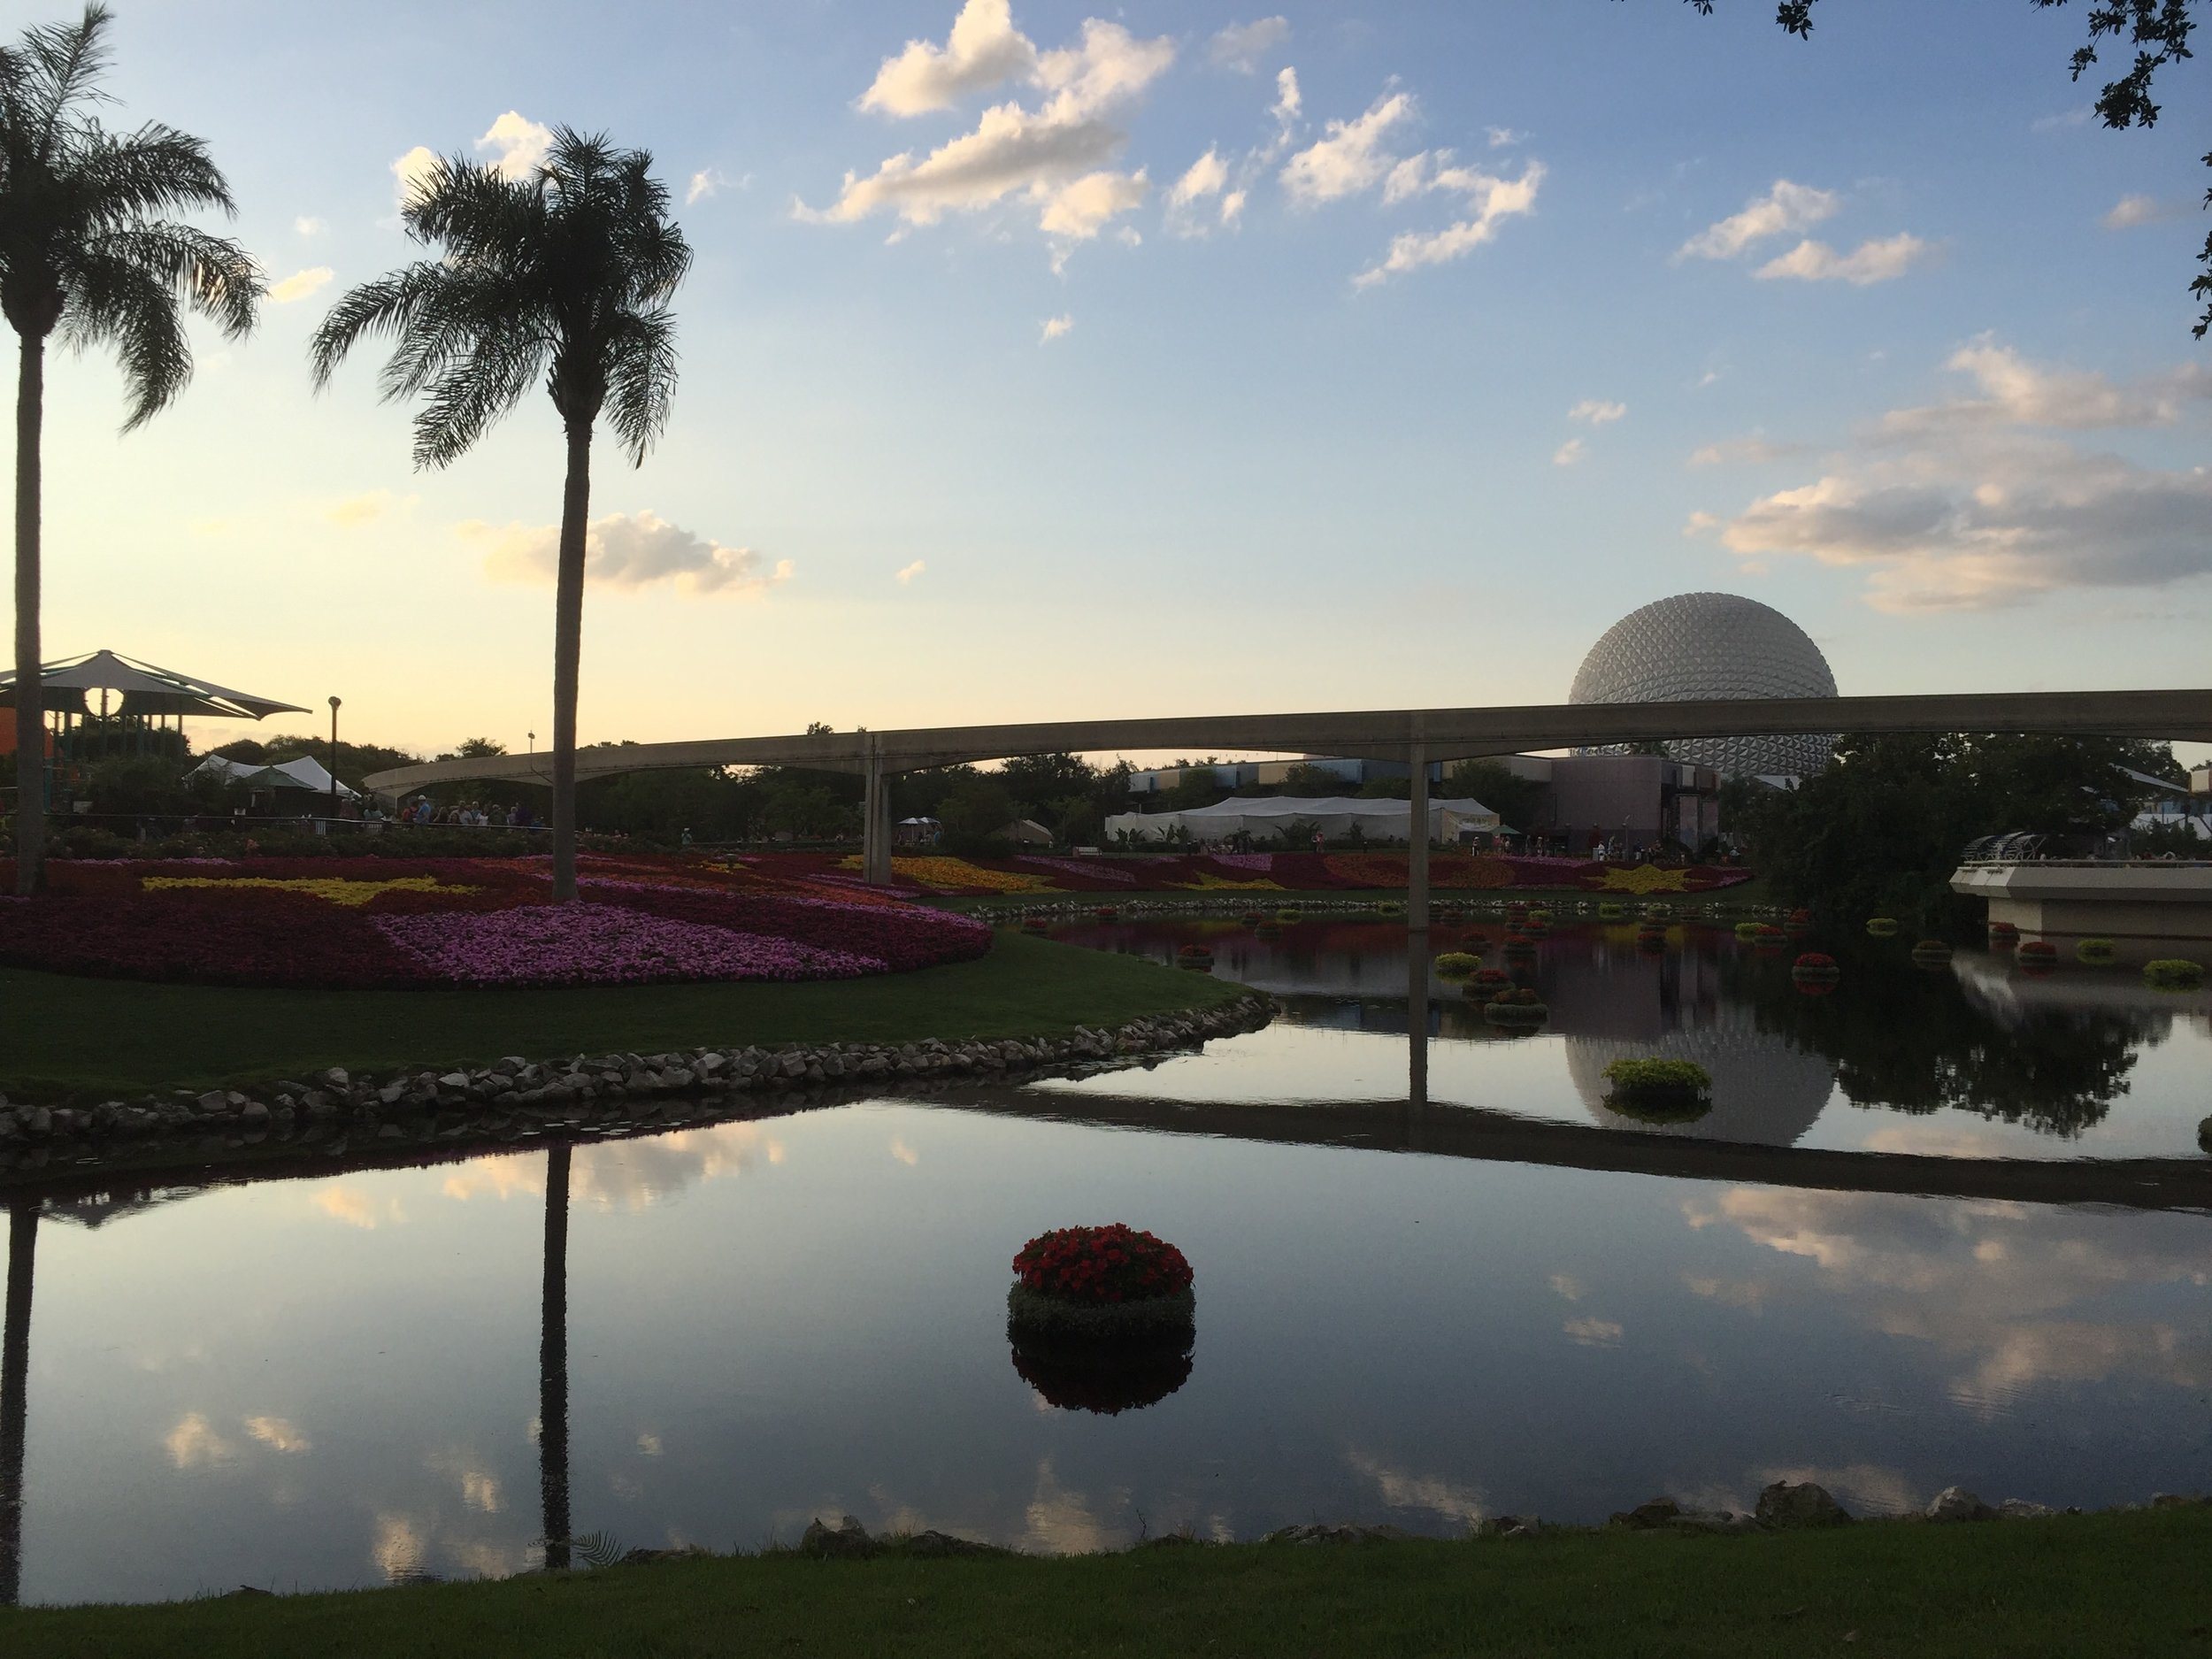 Epcot during the Flower and Garden Festival.